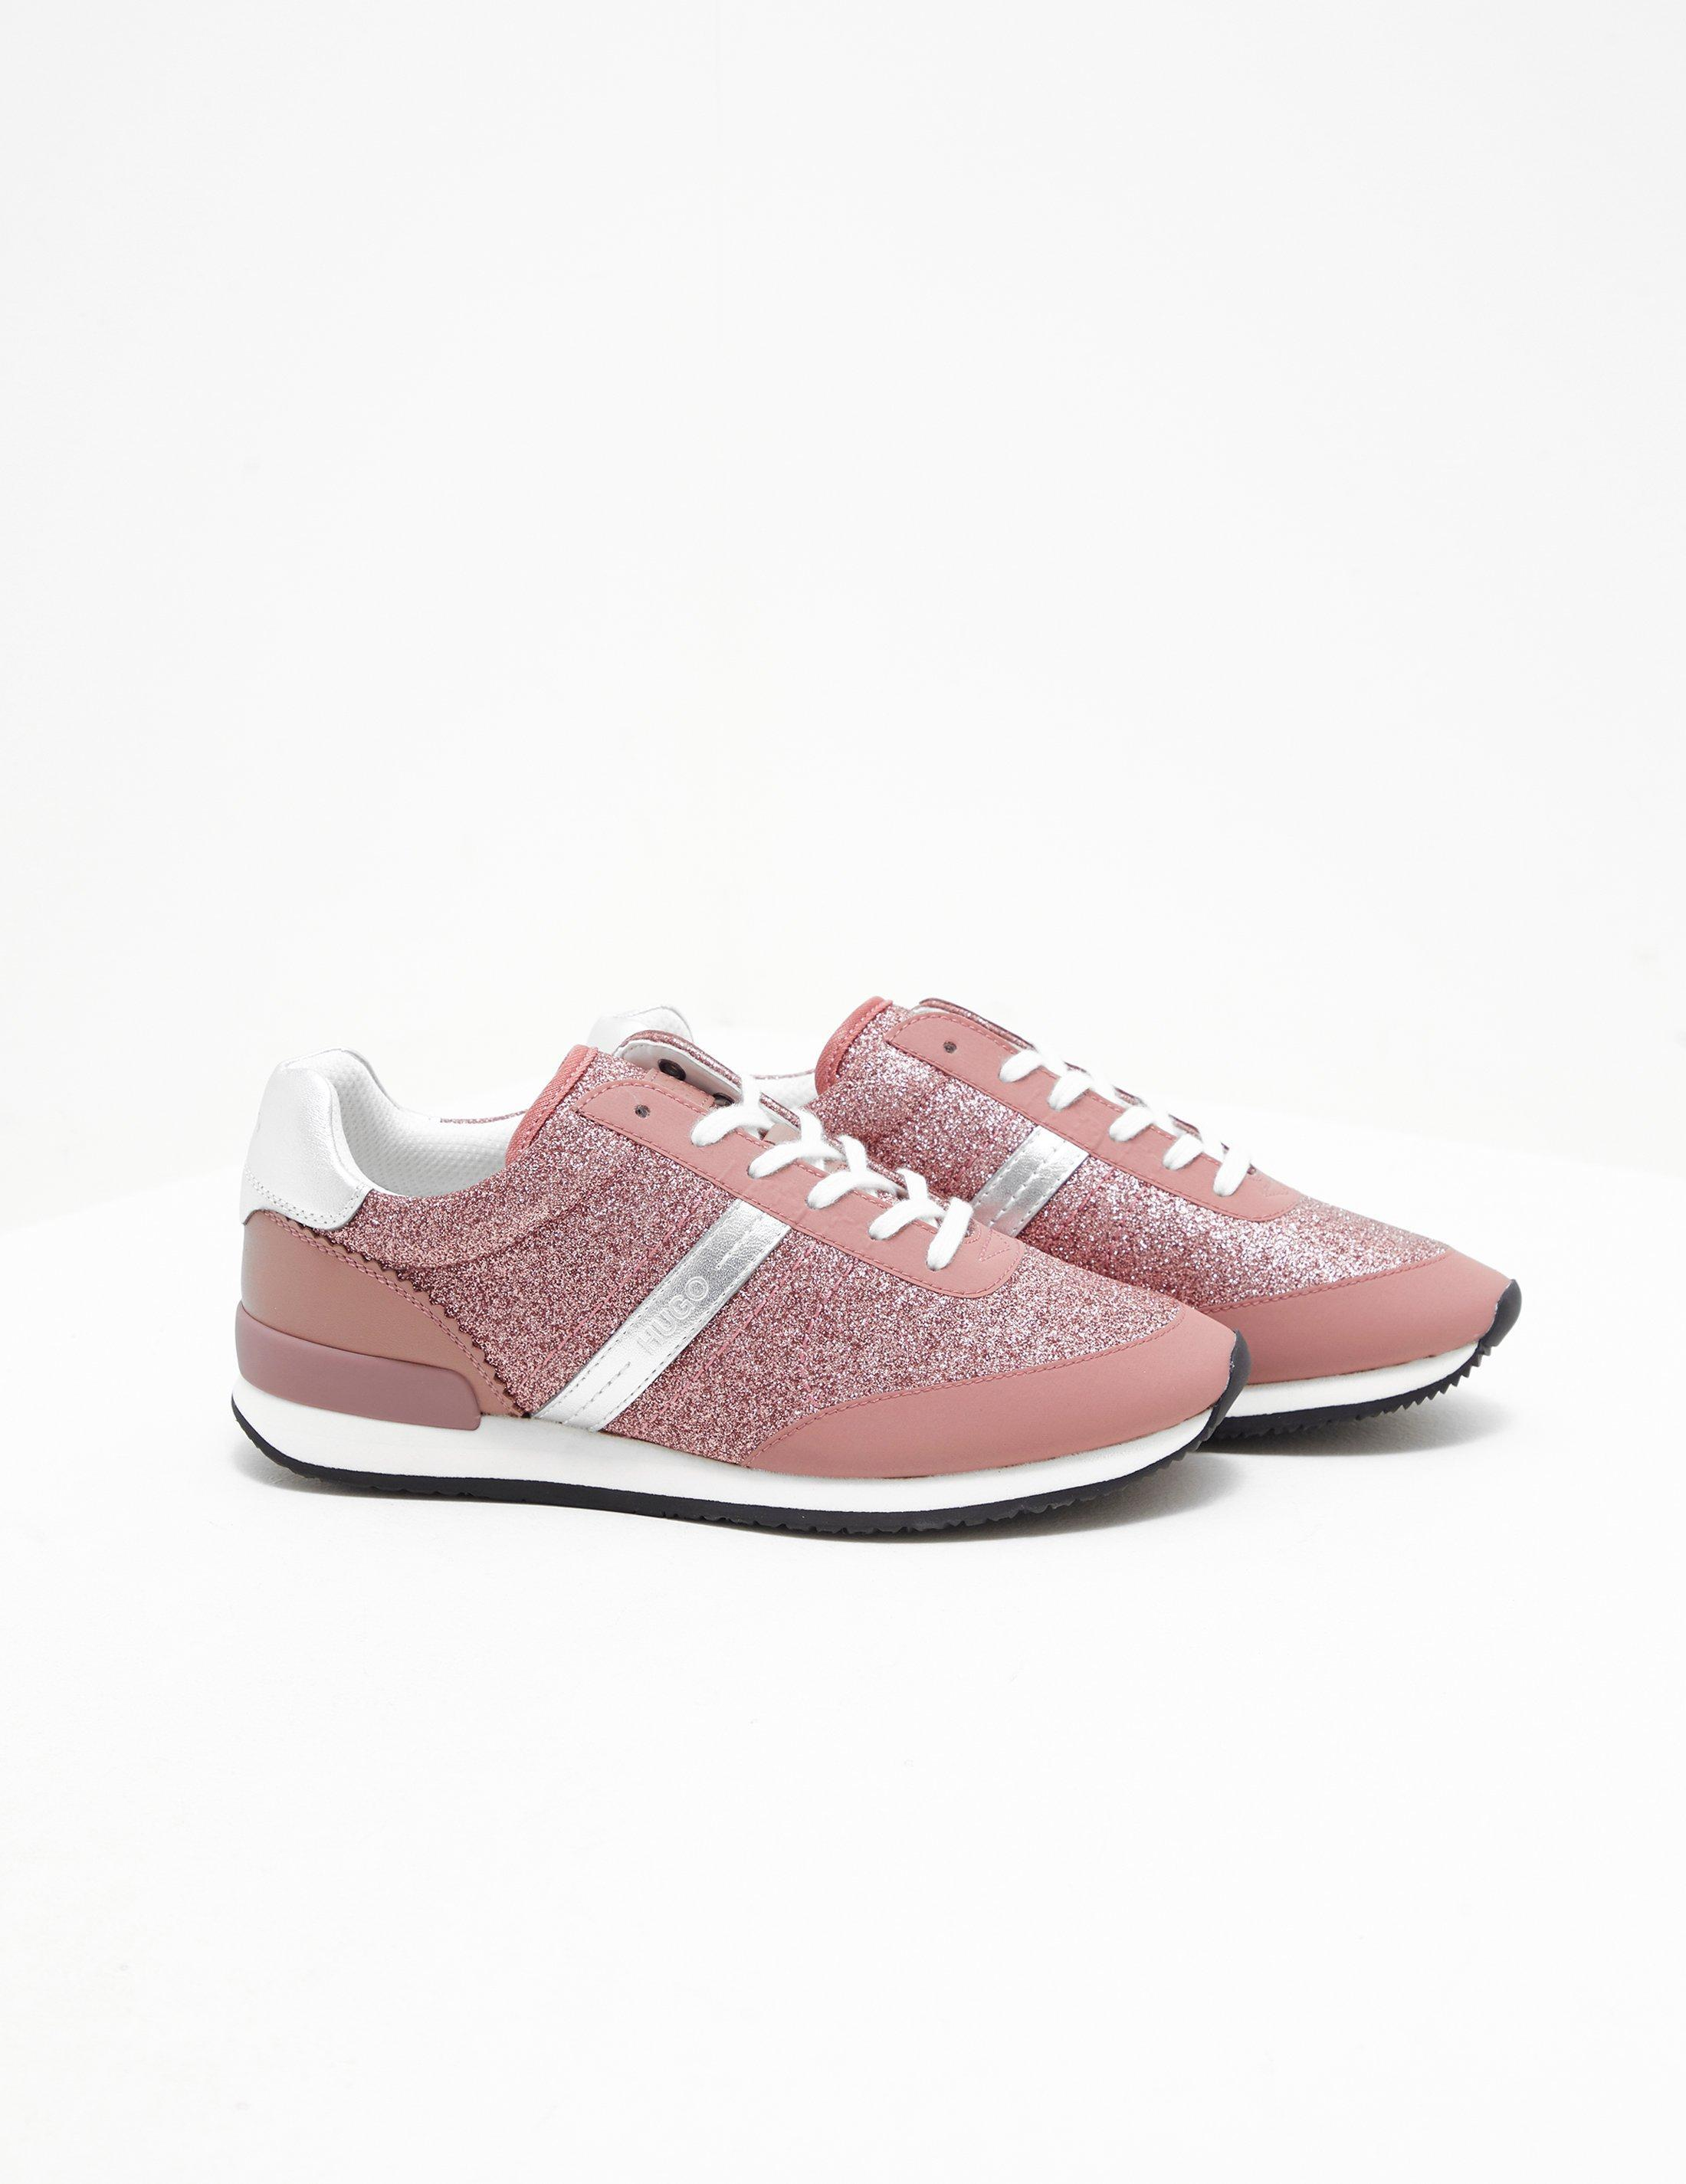 HUGO Leather Adrienne Trainers Pink - Lyst